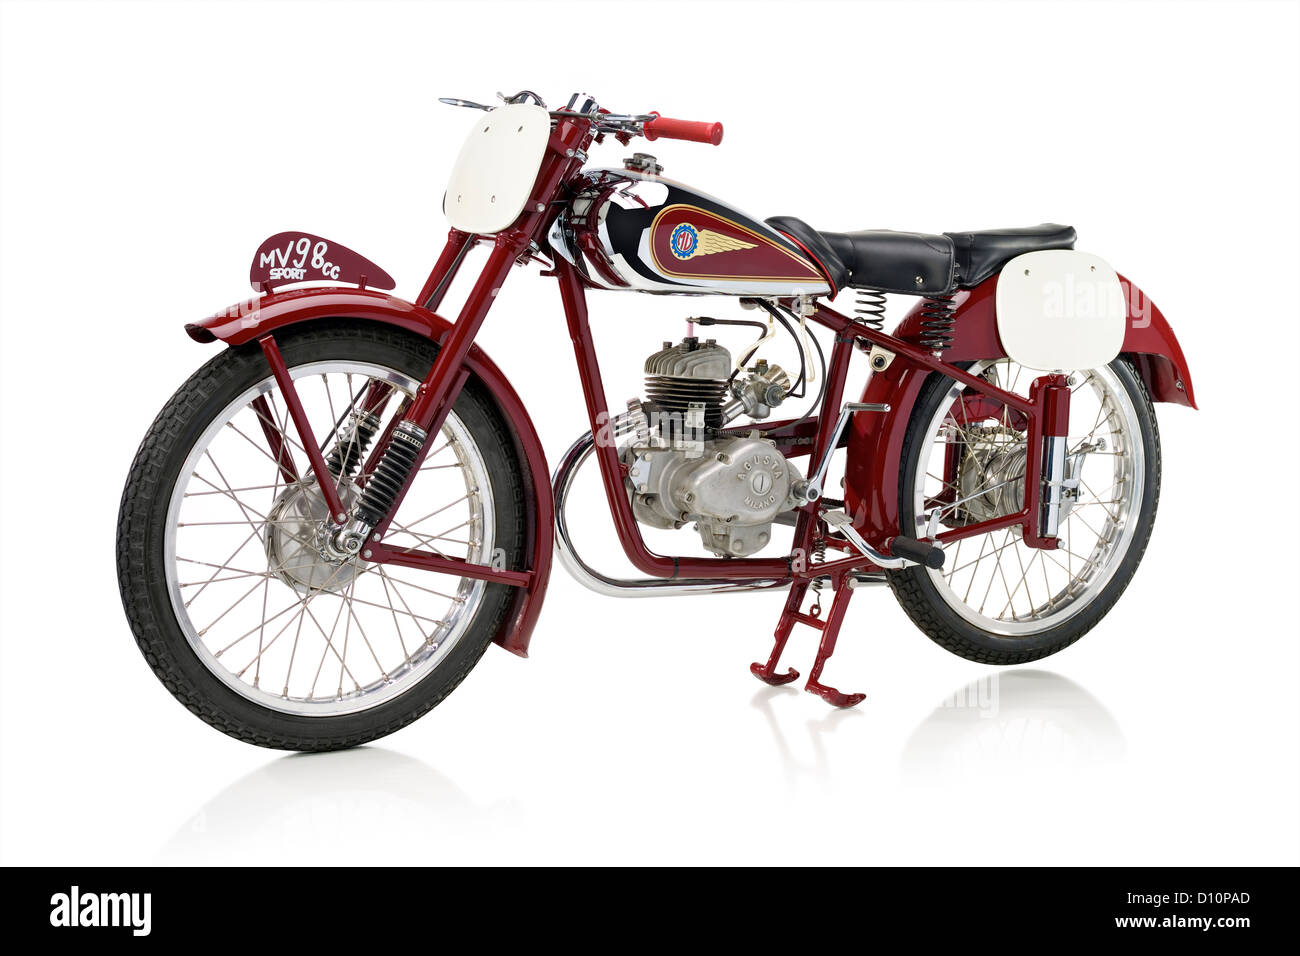 1946 MV Agusta motorcycle 98 Turismo Banque D'Images